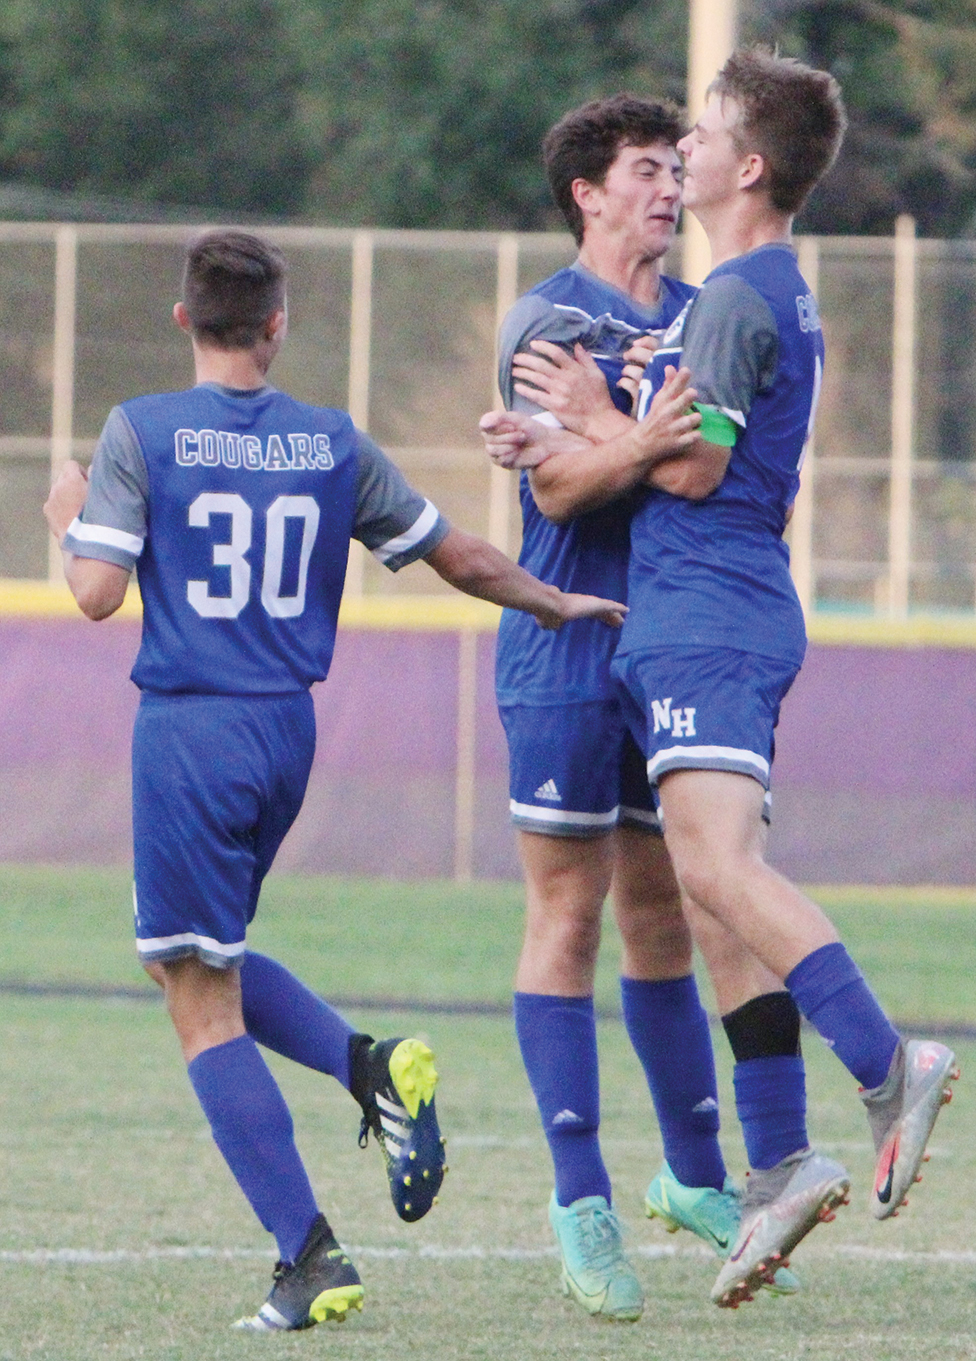 Late goals lift Cougars over Lions